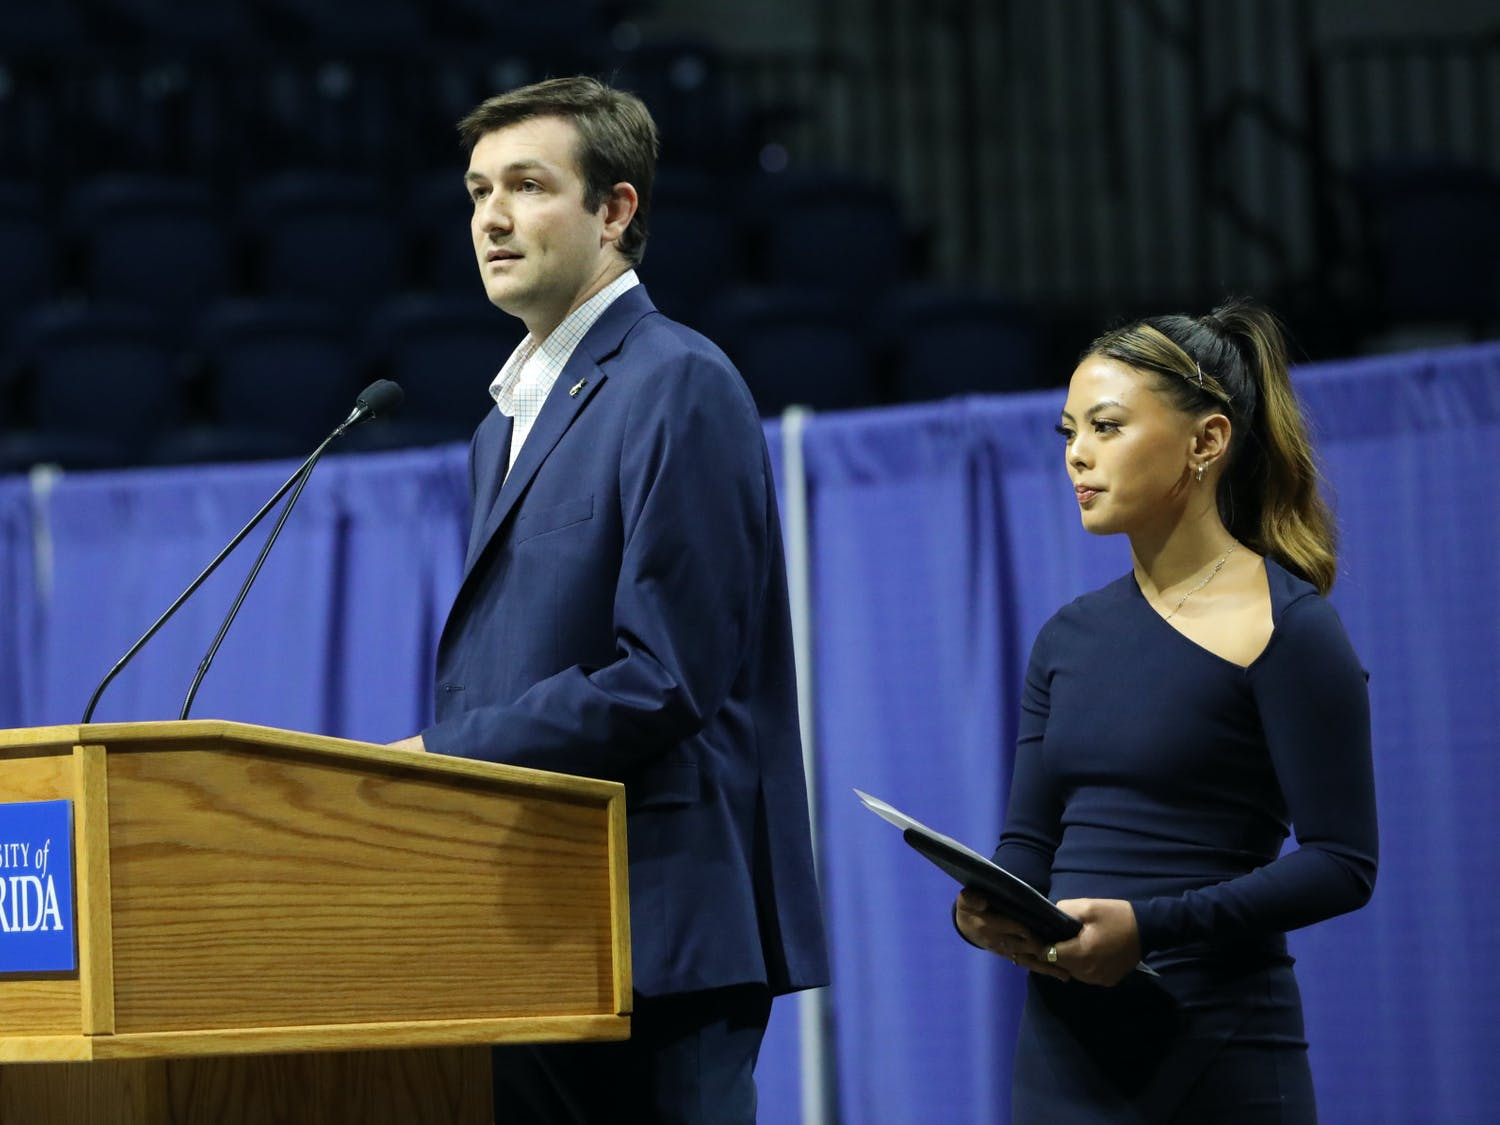 UF Student Government President Cooper Brown (left) and Vice President Faith Maniti (right) announce that student government is holding the Accent Speakers Bureau in-person after two years of pauses on Wednesday, June 30, 2021. They also encouraged students to participate in more school activities as the COVID-19 pandemic becomes less of a concern.